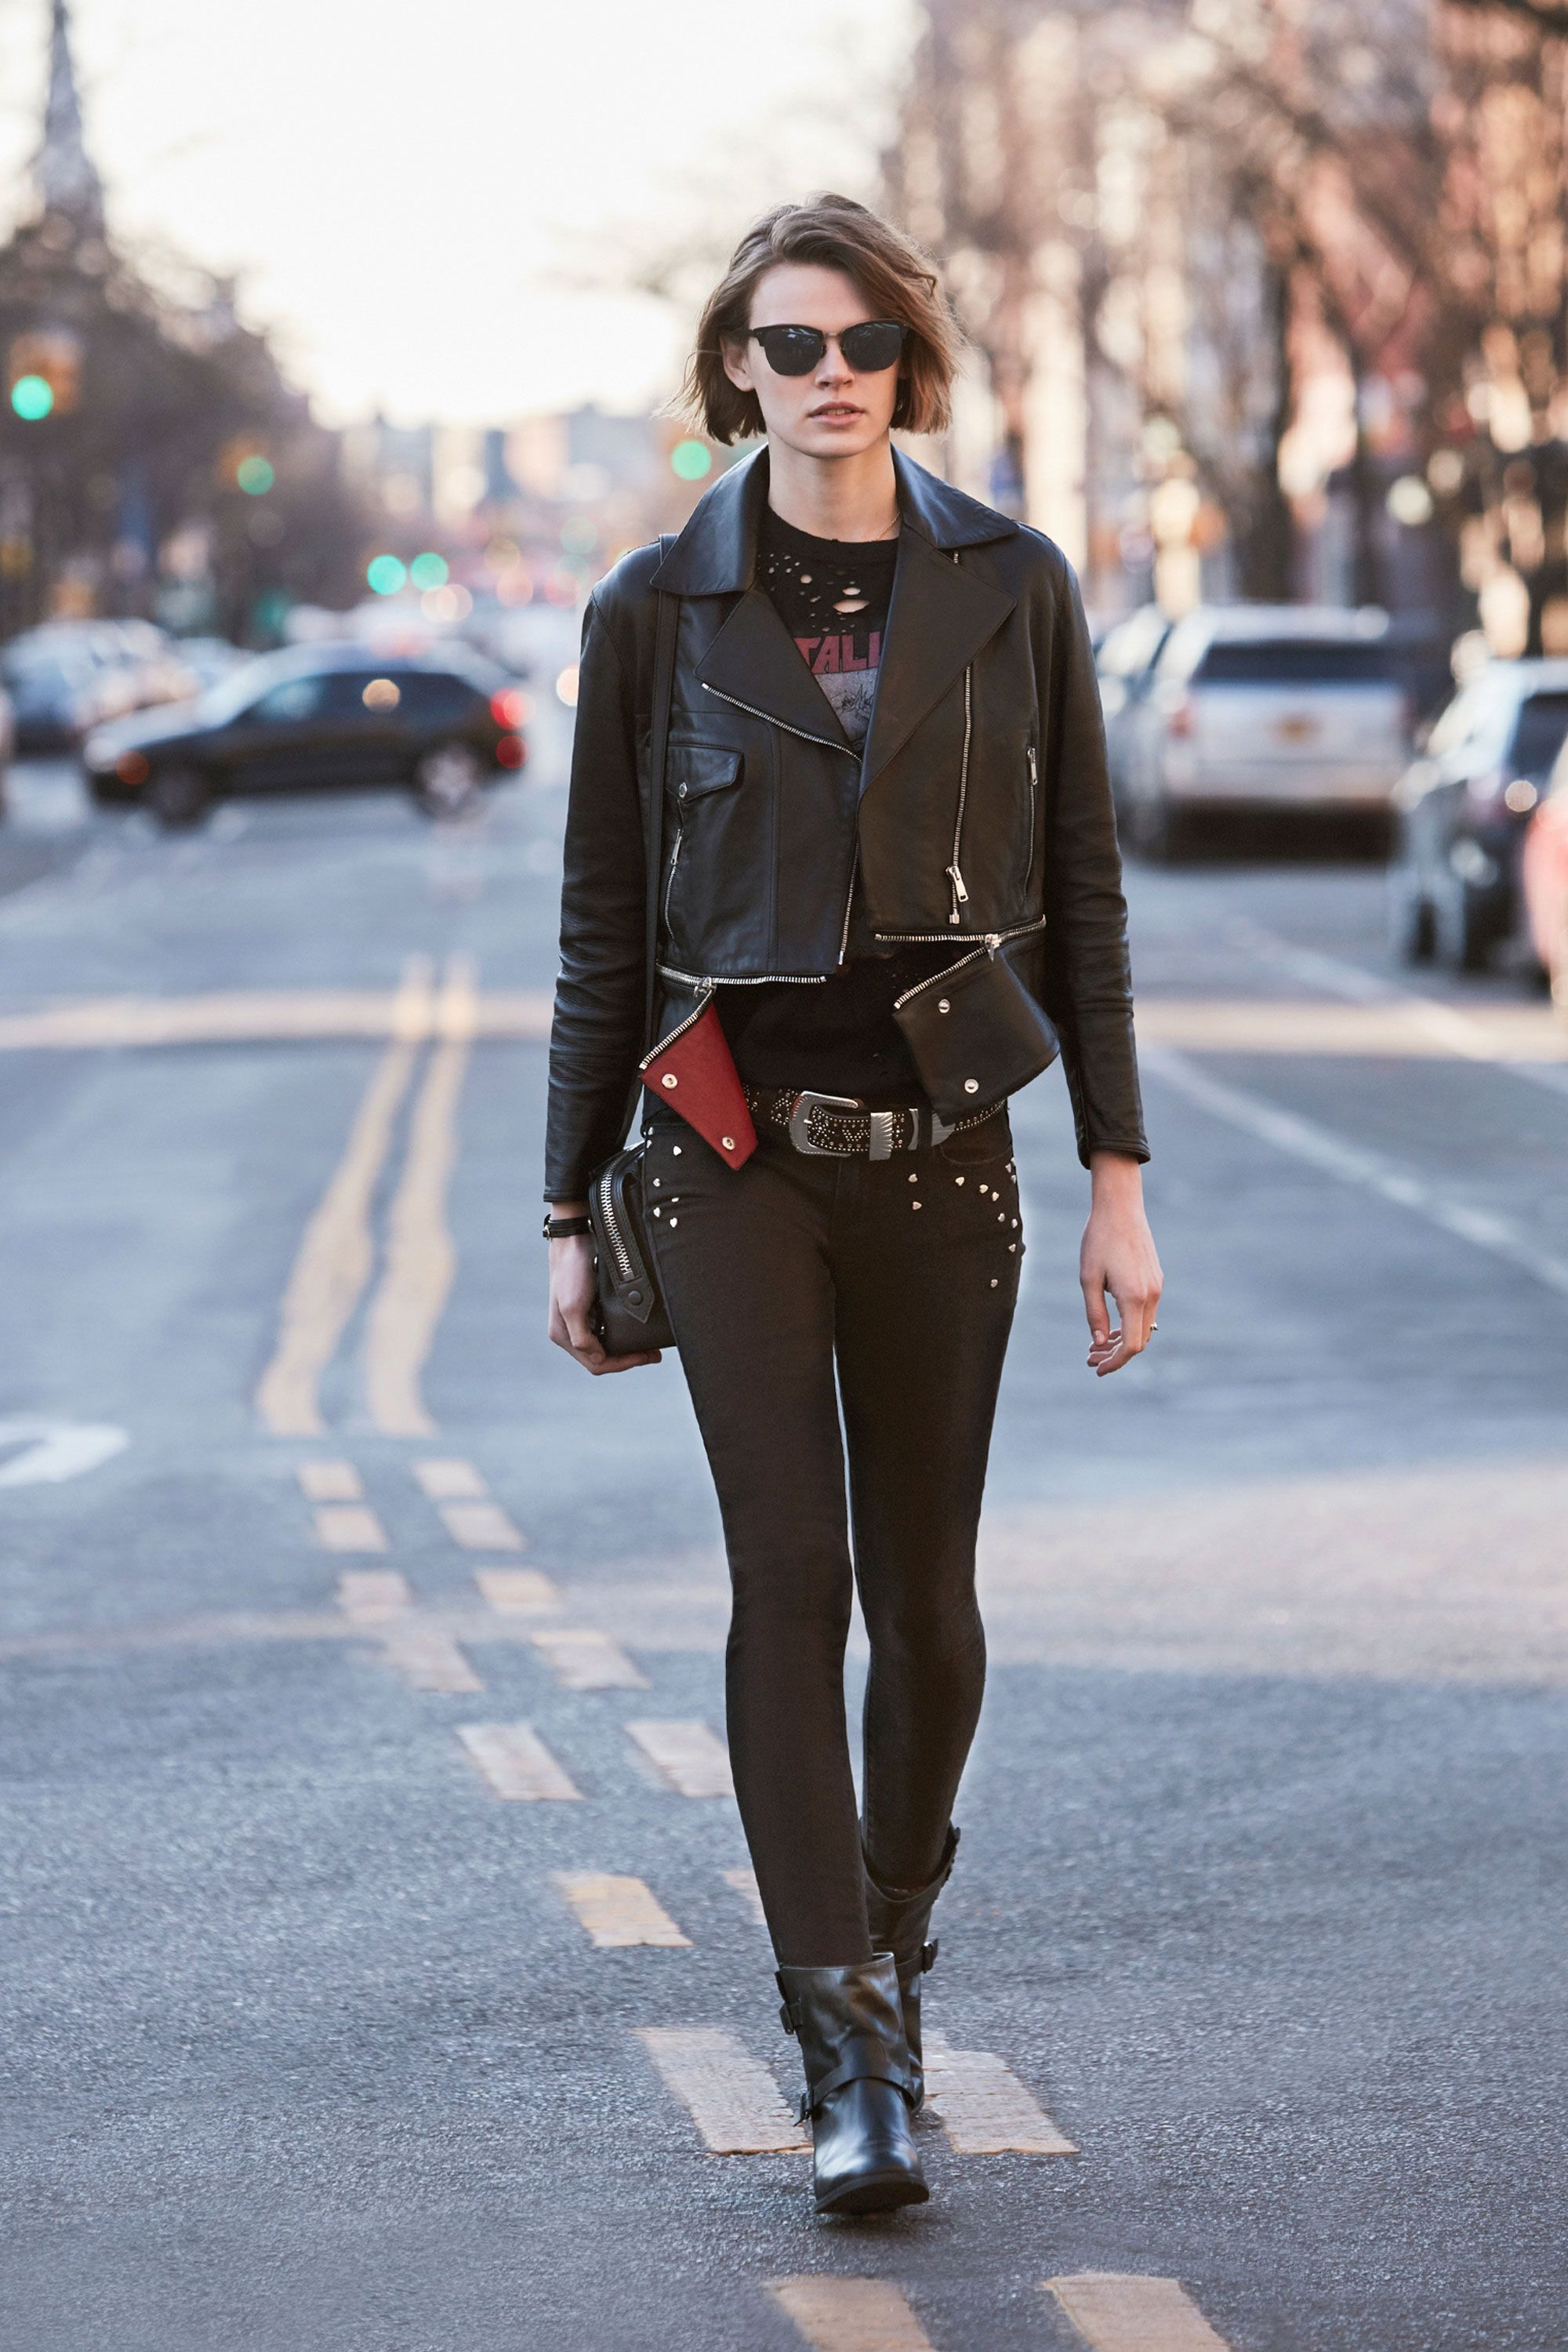 "<p><strong data-redactor-tag=""strong"" data-verified=""redactor"">Her Go-To Uniform:</strong> ""I wear a lot of black basics when I'm running around to castings and meetings, and lots of flat boots. A good jacket is also a staple, and leather is a go-to!""</p><p><br></p><p><span class=""redactor-invisible-space"" data-verified=""redactor"" data-redactor-tag=""span"" data-redactor-class=""redactor-invisible-space""></span></p><p><span class=""redactor-invisible-space"" data-verified=""redactor"" data-redactor-tag=""span"" data-redactor-class=""redactor-invisible-space""><em data-redactor-tag=""em"" data-verified=""redactor"">Belstaff leather jacket, similar style at <a href=""http://shop.nordstrom.com/s/belstaff-burnett-leather-moto-jacket/4514109?origin=category-"" target=""_blank"" data-tracking-id=""recirc-text-link"">nordstrom.com</a>; Topshop t-shirt, $50, <a href=""http://us.topshop.com/en/tsus/product/tall-metallica-nibble-t-shirt-by-and-finally-6171522?bi=0&ps=20&Ntt=graphic%20t-shirt"" target=""_blank"" data-tracking-id=""recirc-text-link"">topshop.com</a>; Frame jeans, $209, <a href=""http://shop.nordstrom.com/s/frame-forever-karlie-skinny-jeans-film-noir/4244206?origin=keywordsearch-personalizedsort&fashioncolor=FILM%20NOIR"" target=""_blank"" data-tracking-id=""recirc-text-link"">nordstrom.com</a>; Stuart Weitzman boots, $535, <a href=""http://shop.nordstrom.com/s/stuart-weitzman-milano-chelsea-boot-women/4448949?origin=category-personalizedsort&fashioncolor=BLACK%20VECCHIO"" target=""_blank"" data-tracking-id=""recirc-text-link"">nordstrom.com</a>; Alexander Wang bag, $495, <a href=""http://shop.nordstrom.com/s/alexander-wang-biker-leather-crossbody-wallet/4579672?origin=category-"" target=""_blank"" data-tracking-id=""recirc-text-link"">nordstrom.com</a>; Belt, models own; Ray Ban sunglasses, $150, <a href=""http://shop.nordstrom.com/s/ray-ban-highstreet-57mm-sunglasses/3340892?origin=keywordsearch-personalizedsort&fashioncolor=DEMI%20BLACK%2F%20GREEN%20SOLID"" target=""_blank"" data-tracking-id=""recirc-text-link"">nordstrom.com</a>. </em></span></p>"